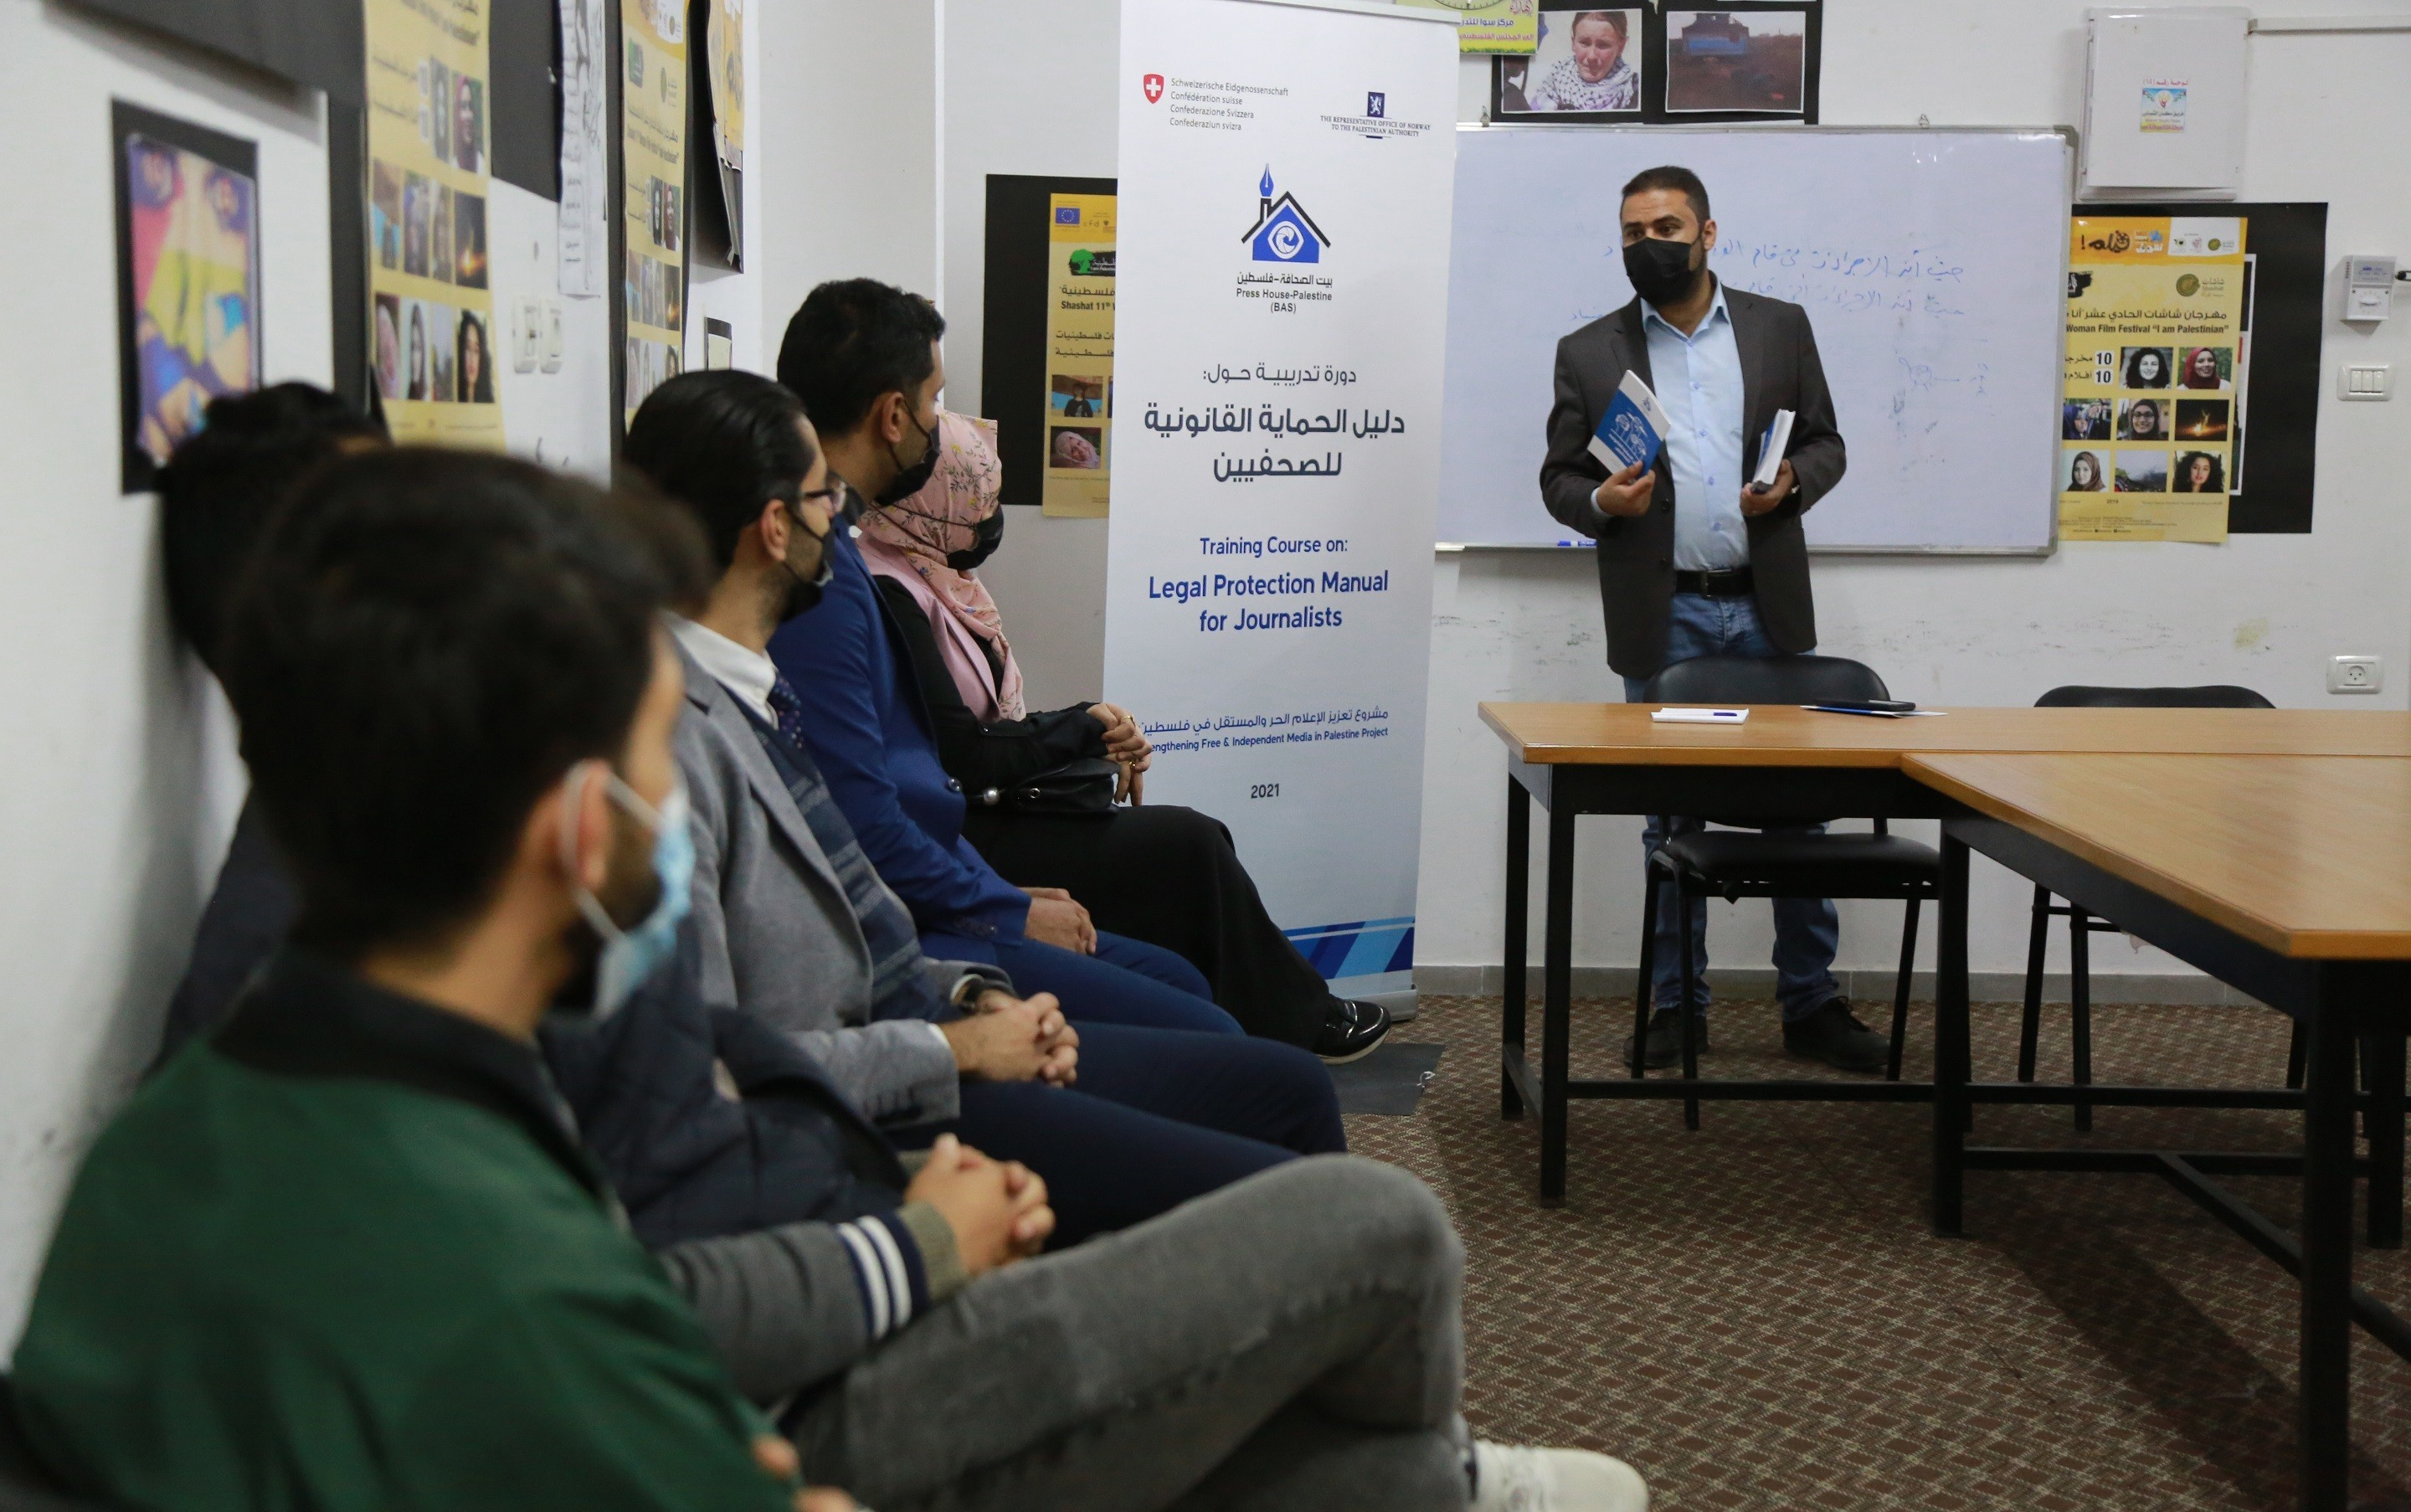 Press House organizes four training sessions in Rafah on the Legal Protection Manual for Journalists